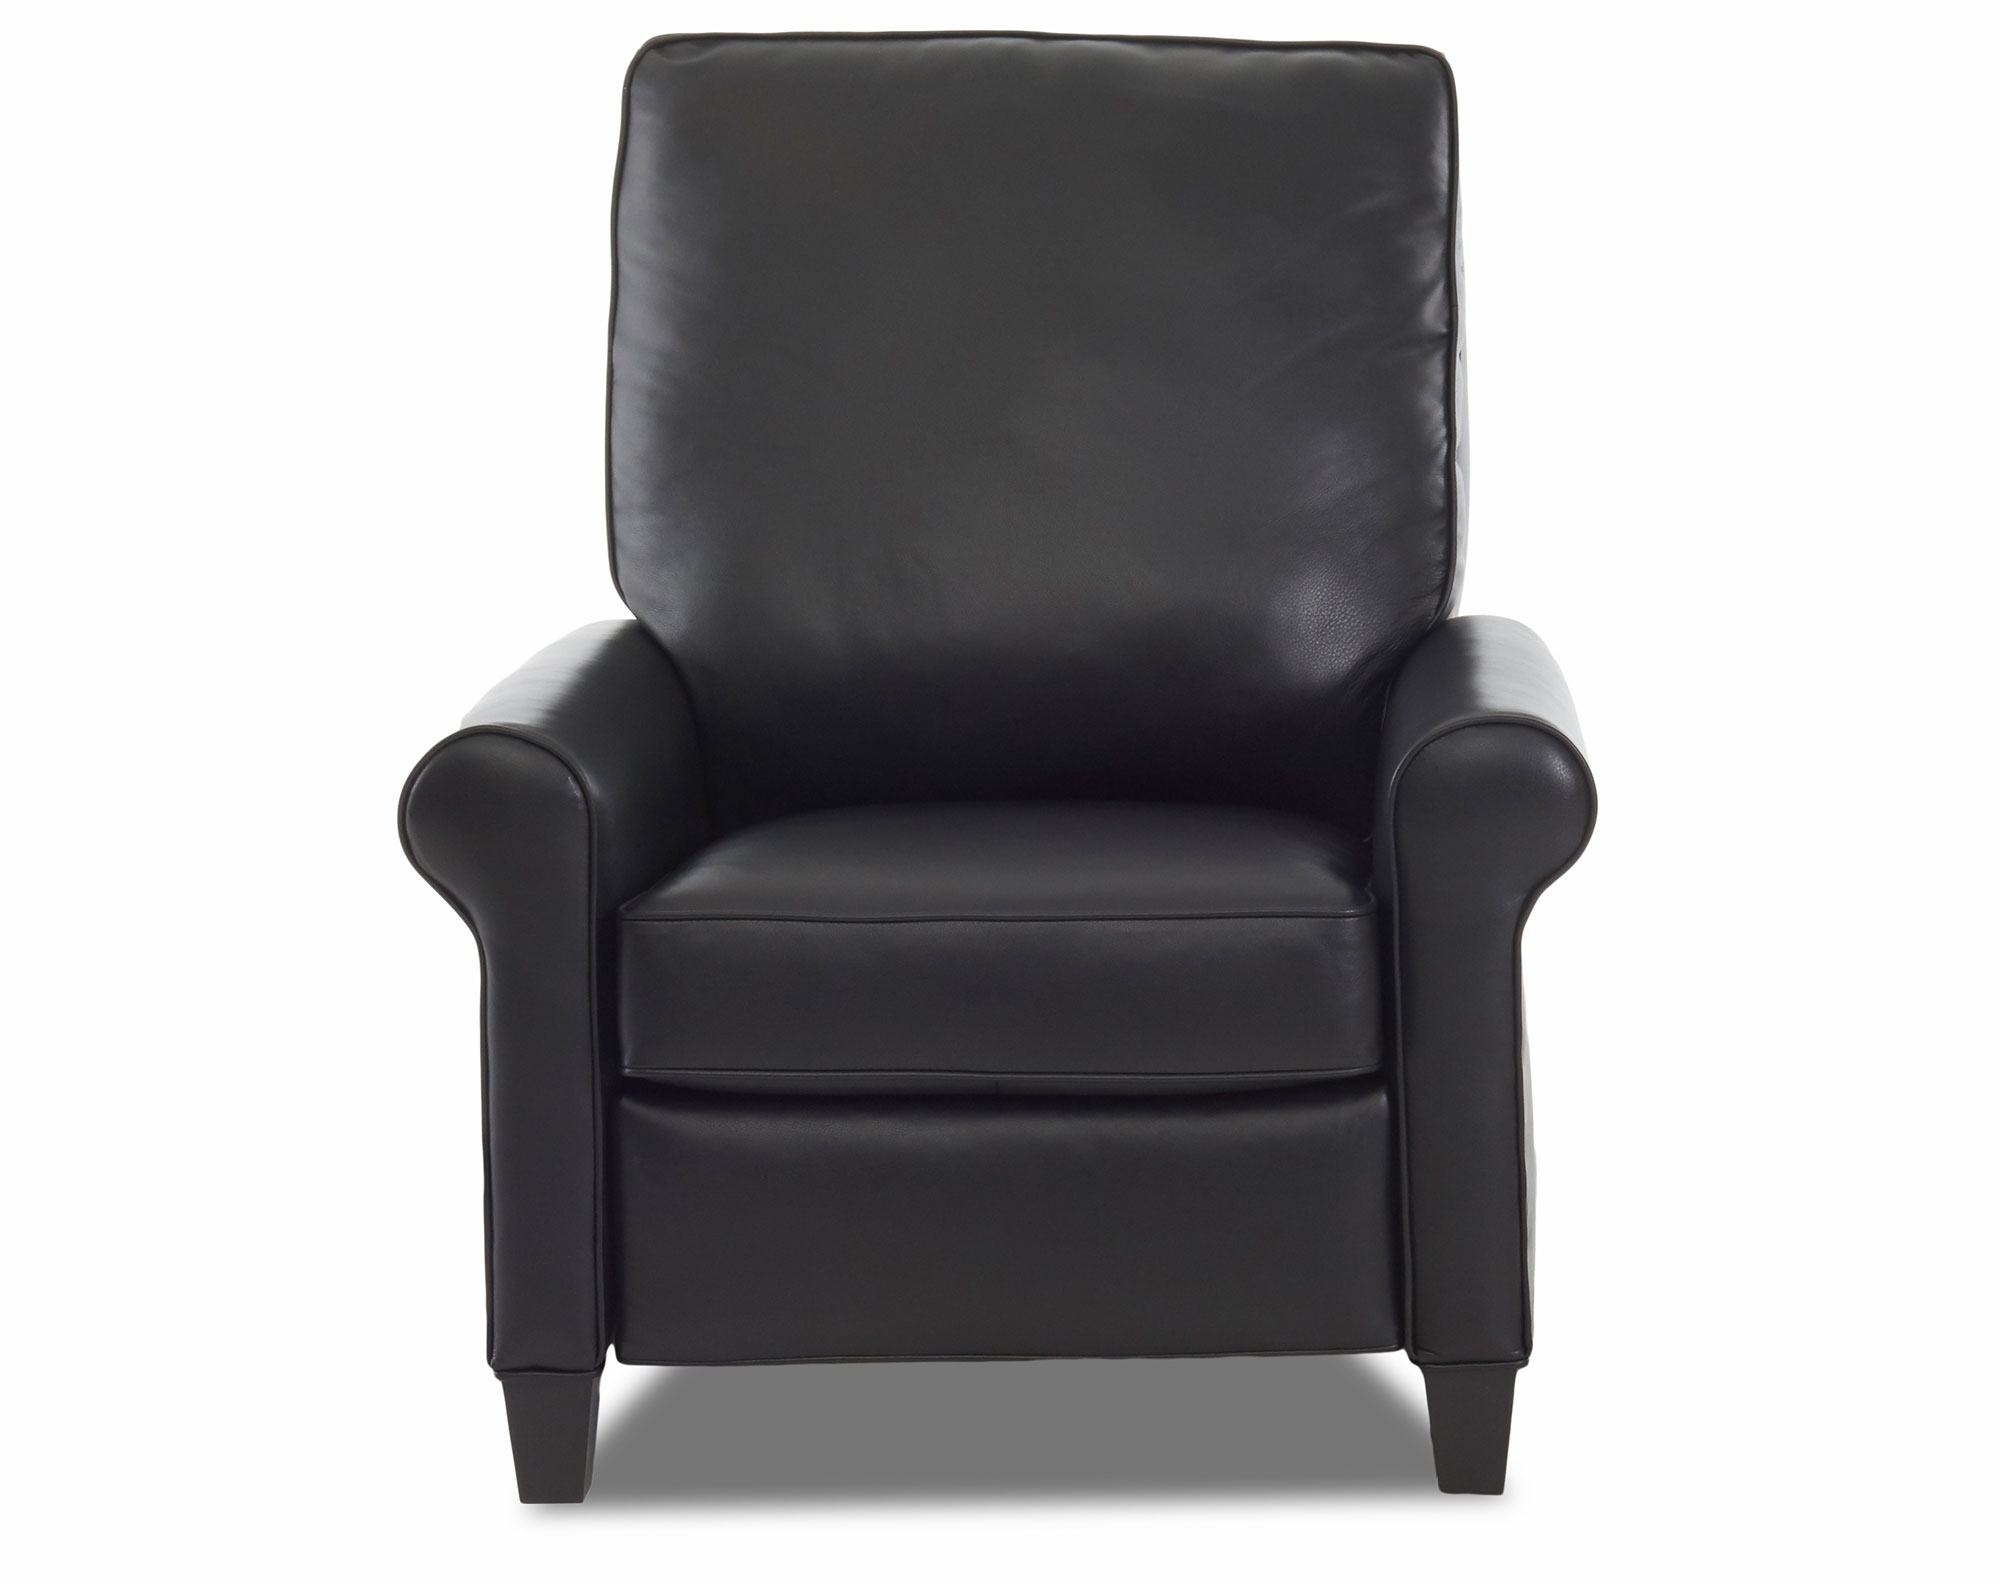 Incredible El Grande High Leg Leather Reclining Chair Sofas And Alphanode Cool Chair Designs And Ideas Alphanodeonline